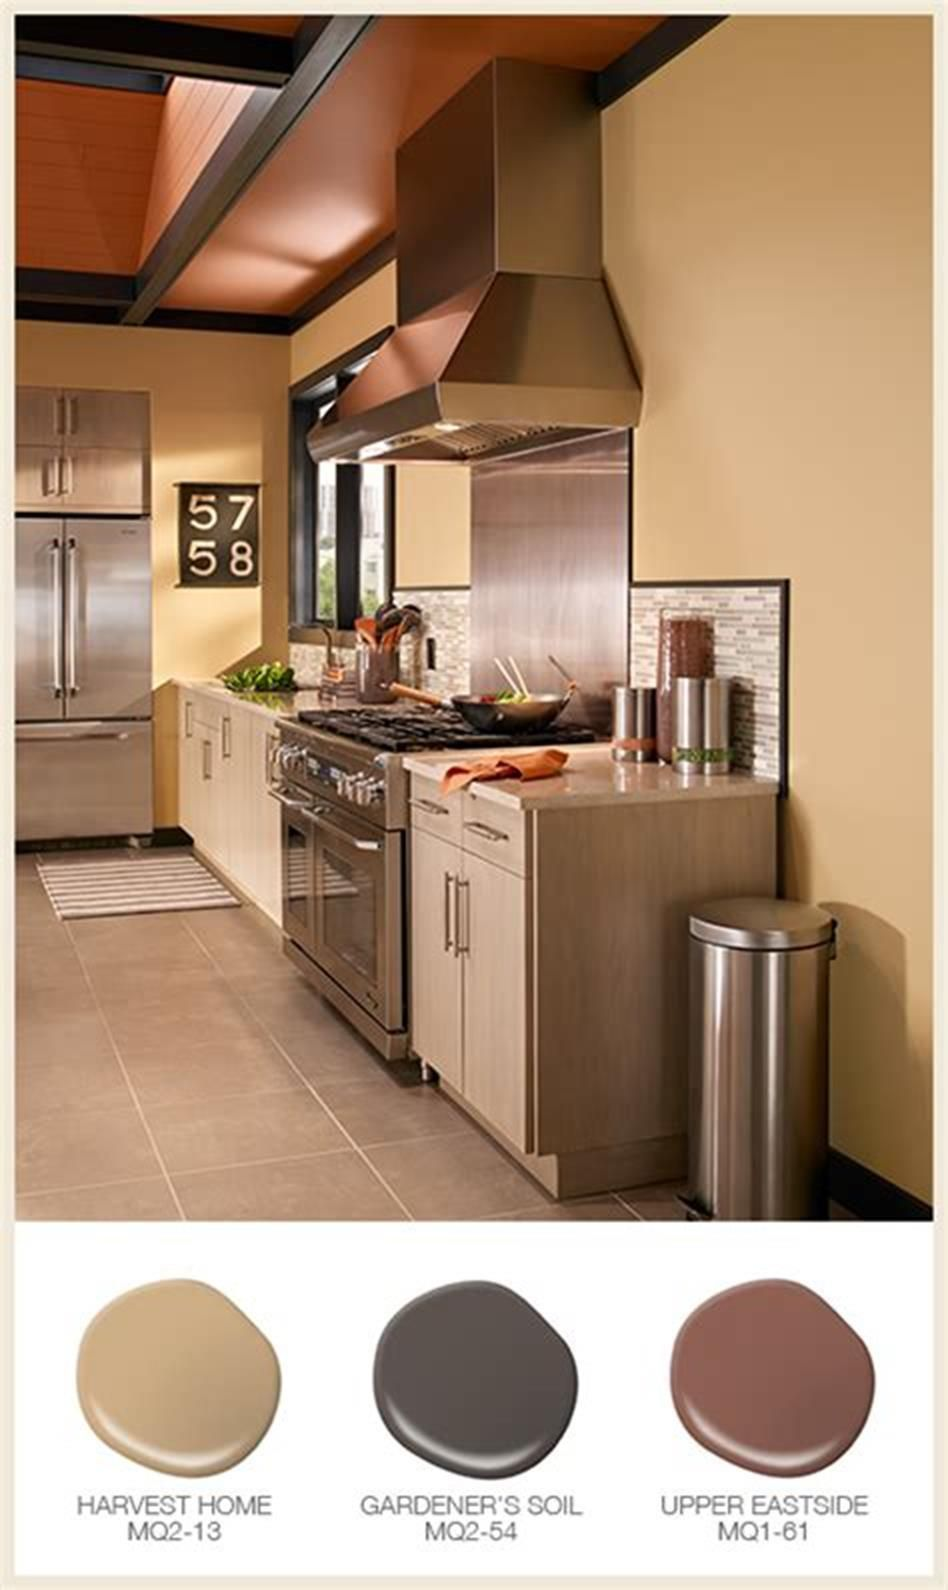 46 most popular kitchen color schemes trends 2019 on good wall colors for kitchens id=28867